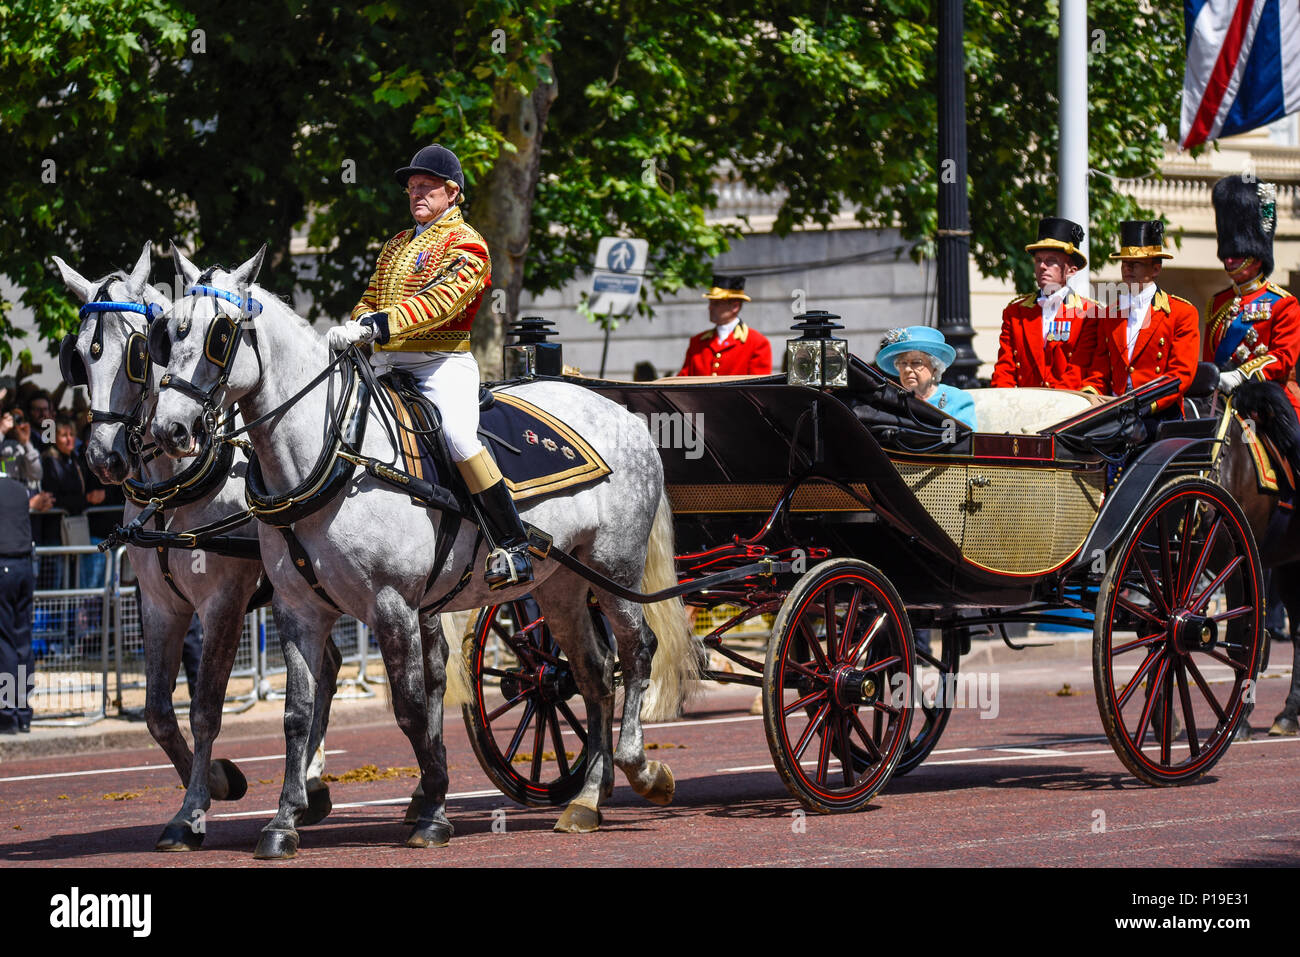 the-queen-at-trooping-the-colour-2018-with-head-coachman-philip-barnard-brown-leading-the-mall-london-uk-P19E31.jpg